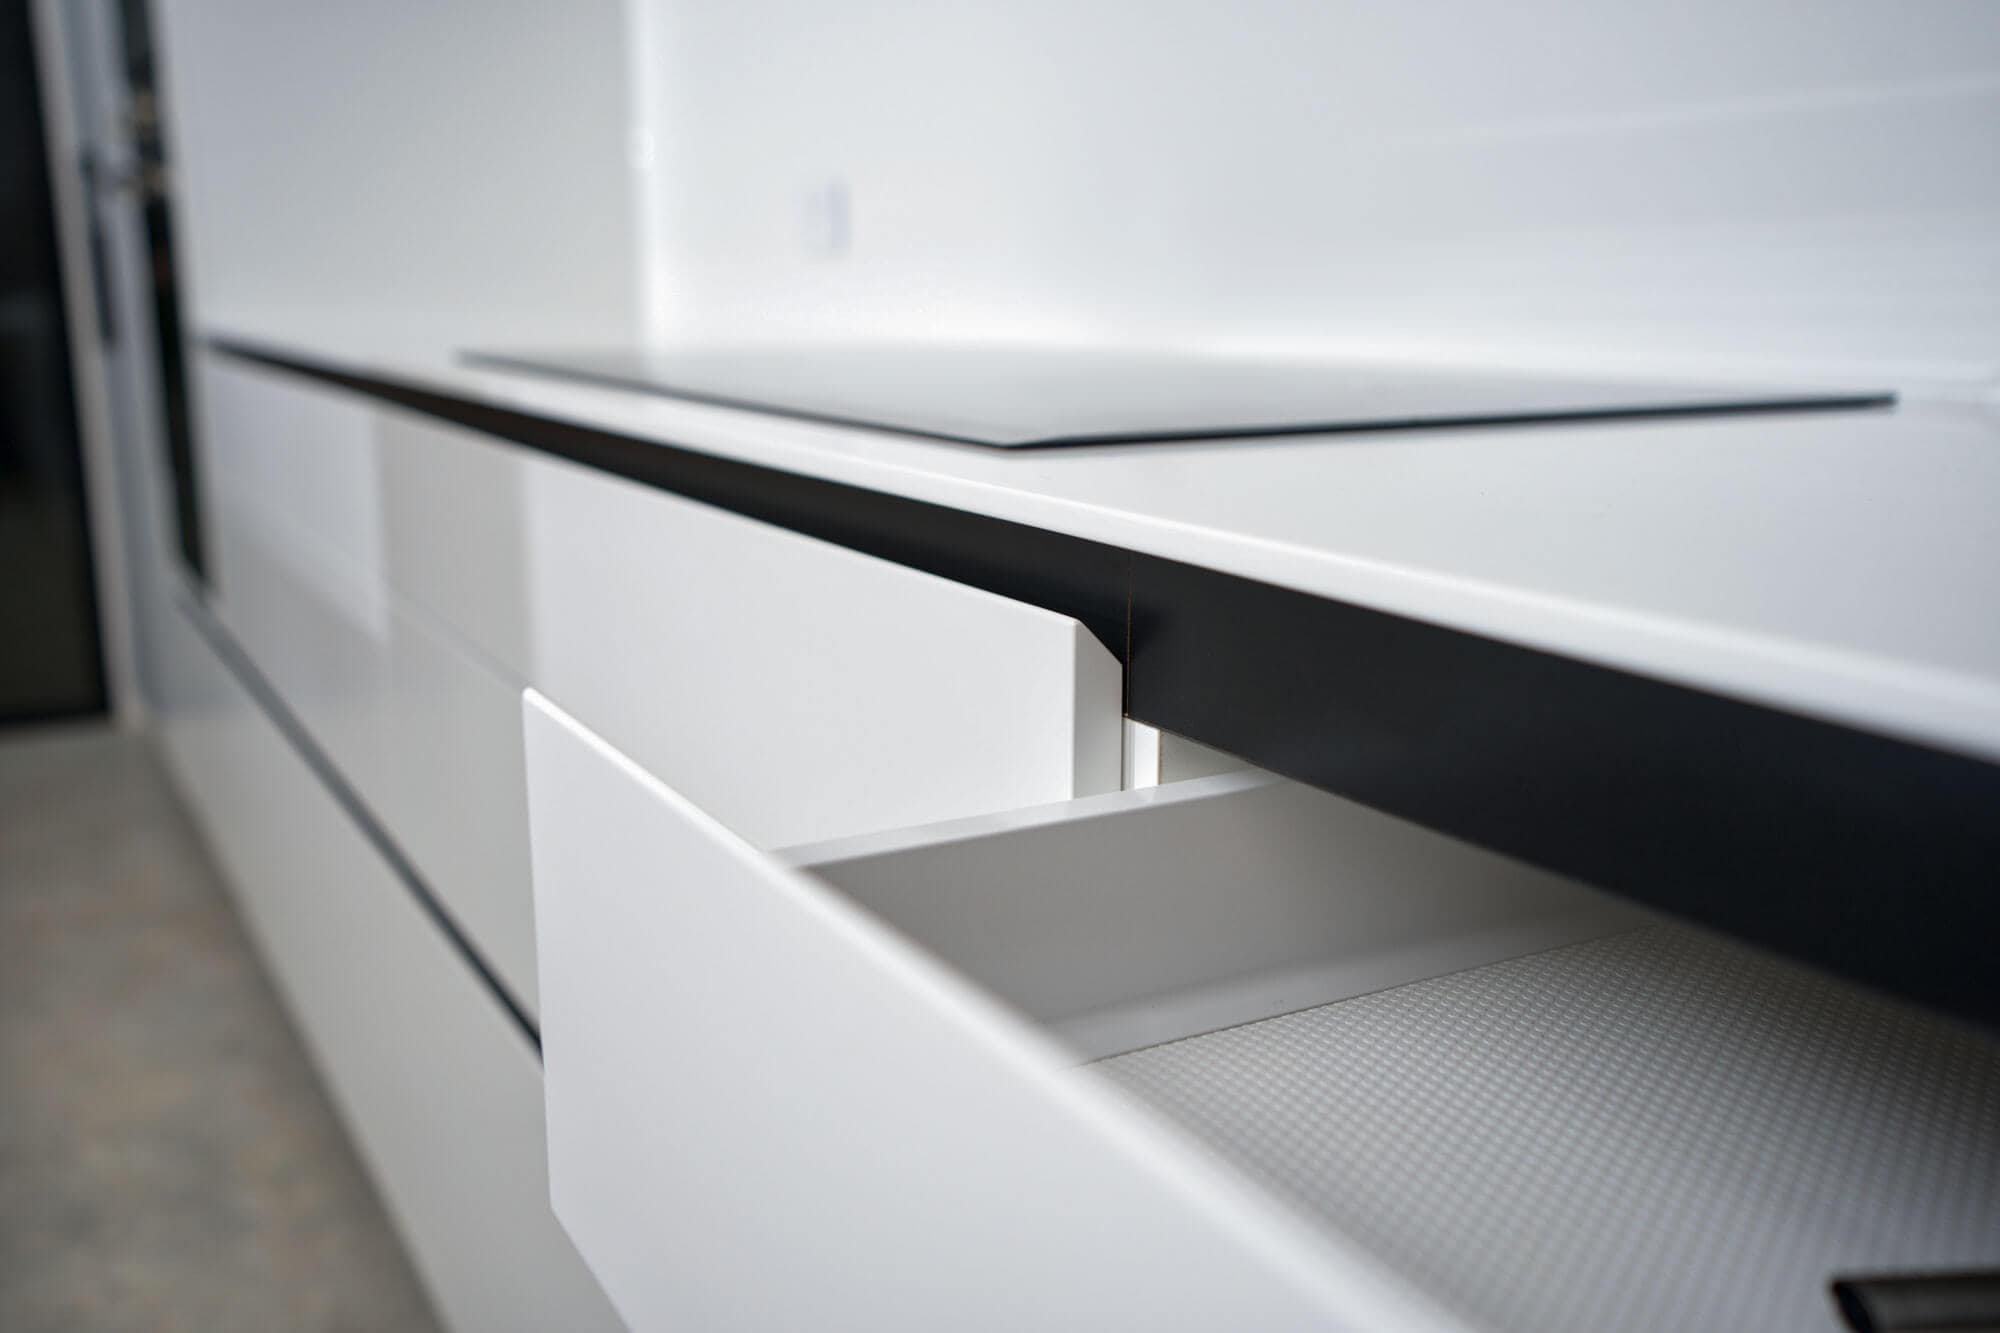 White custom designed kitchen draws with shaped edge in place of handles